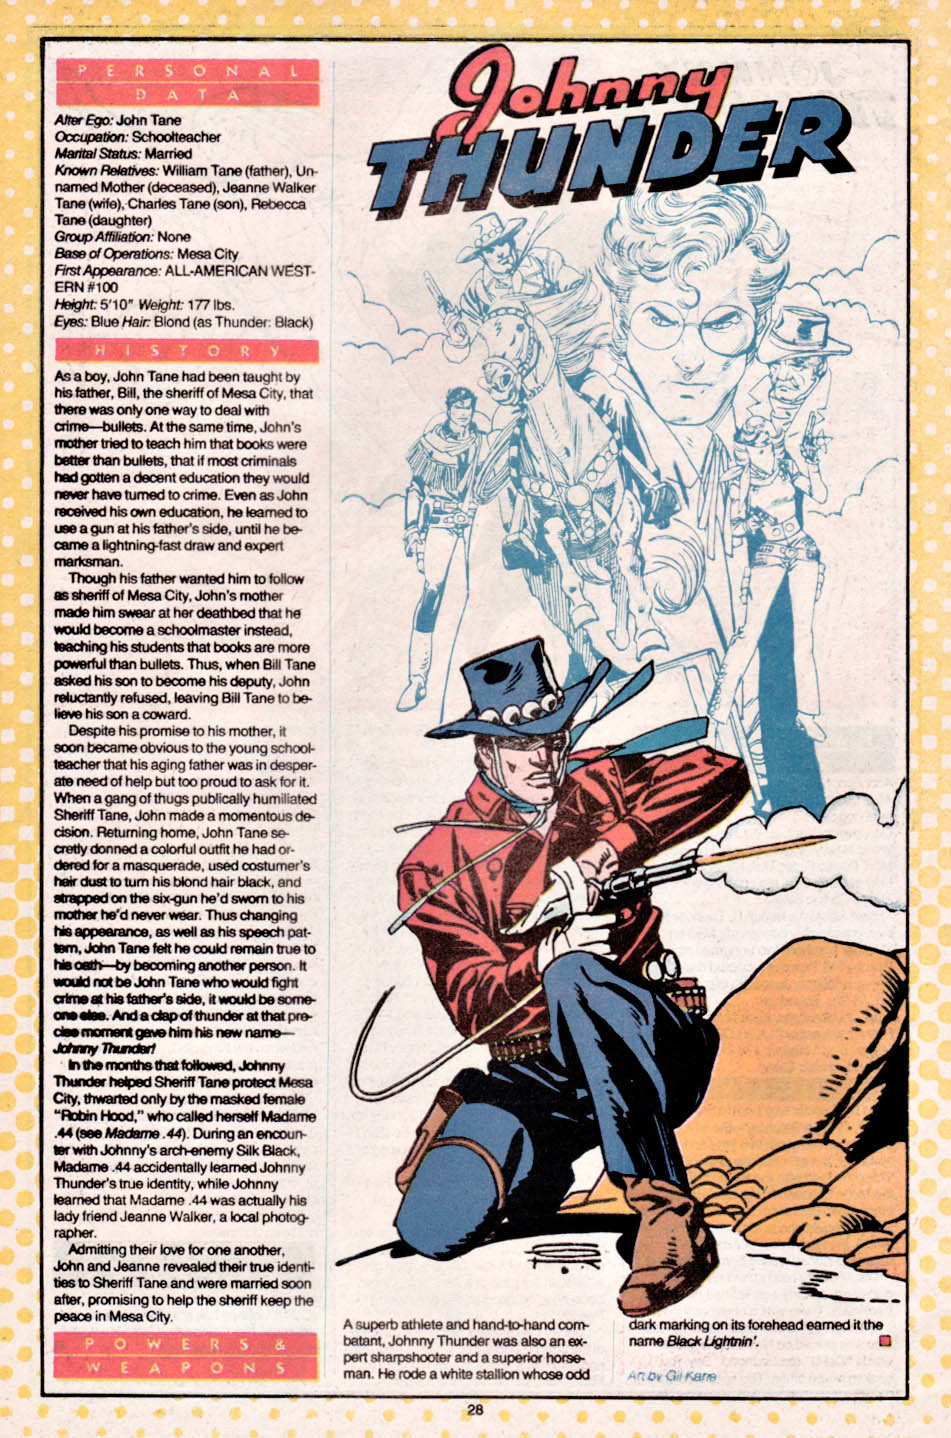 Who's Who: The Definitive Directory of the DC Universe #11 (1985) - Johnny Thunder drawn by Gil Kane